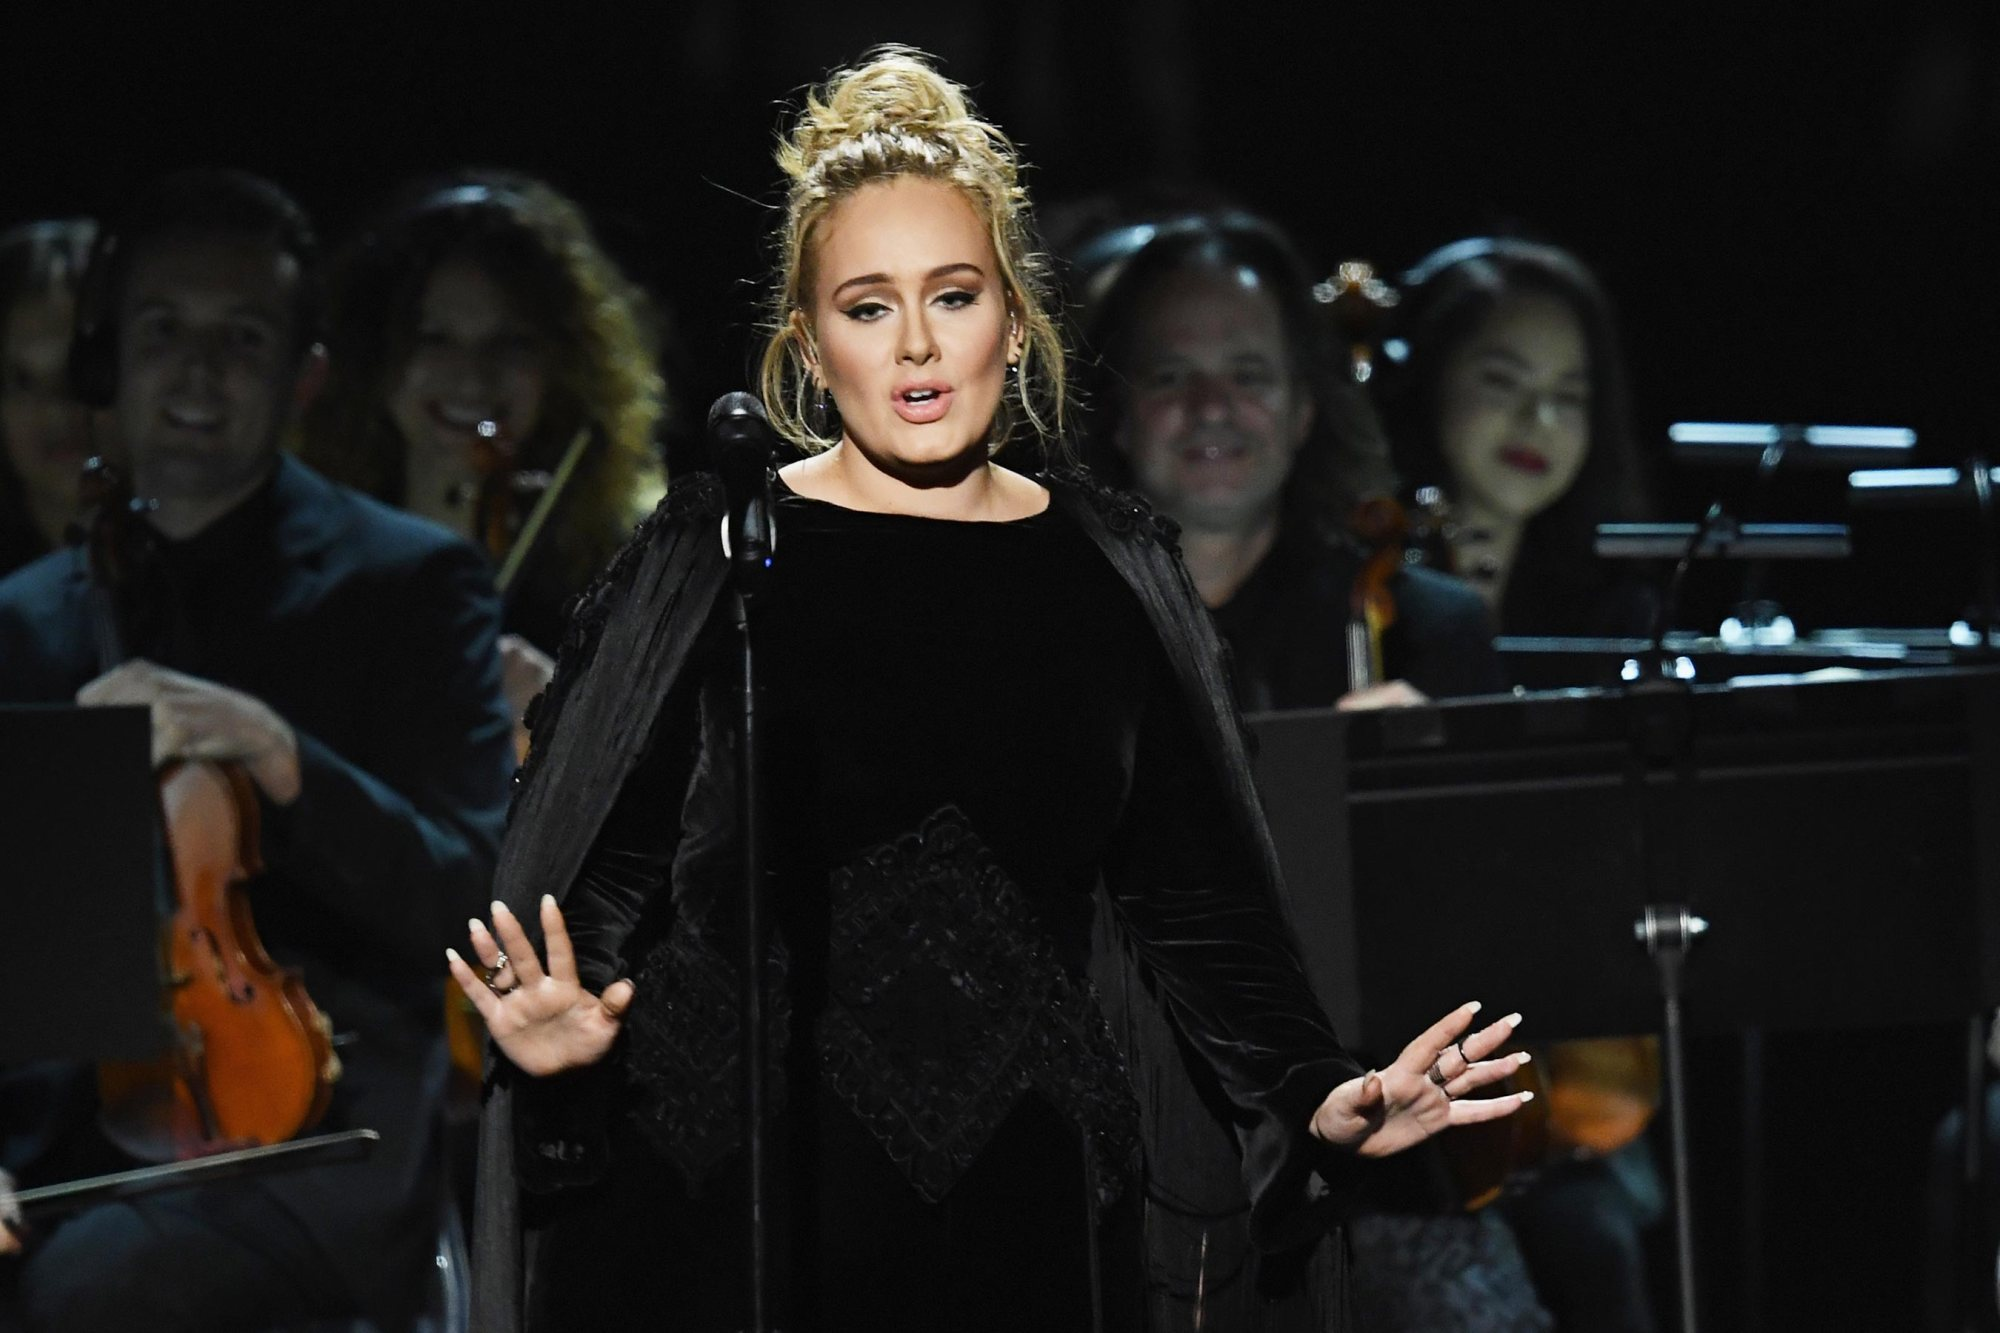 Performing with Adele at the 59th Annual Grammy Awards  February 2017  ·  Staples Center,Los Angeles, CA